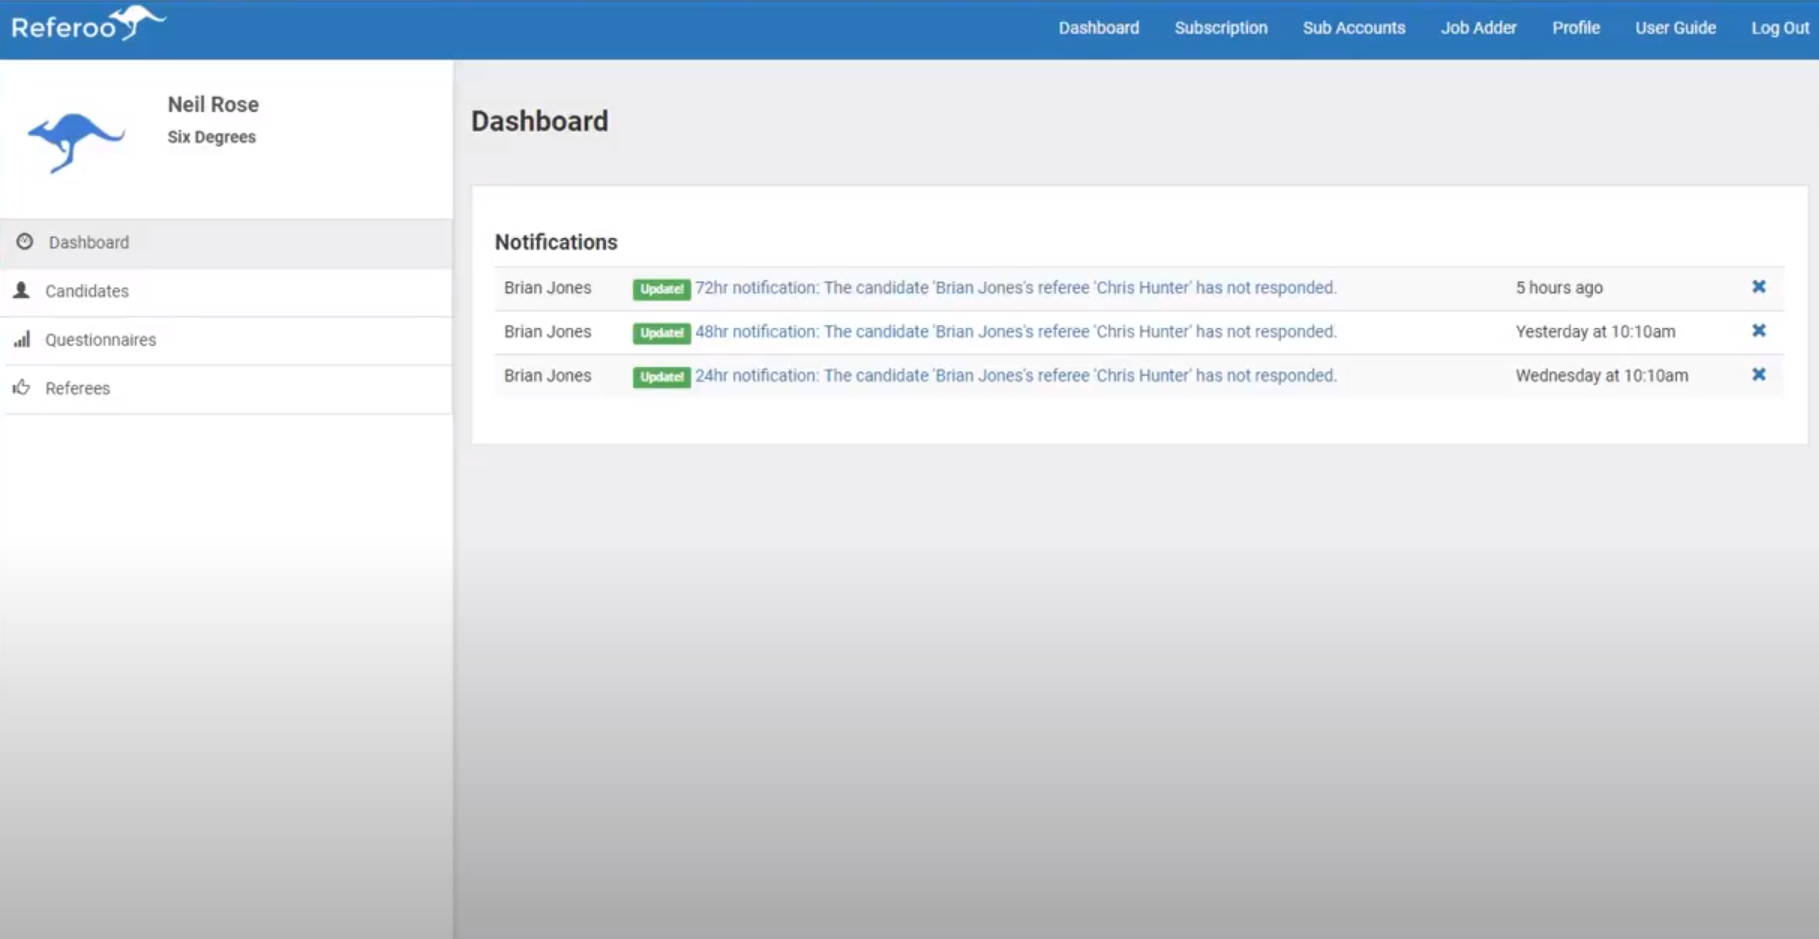 Referoo dashboard